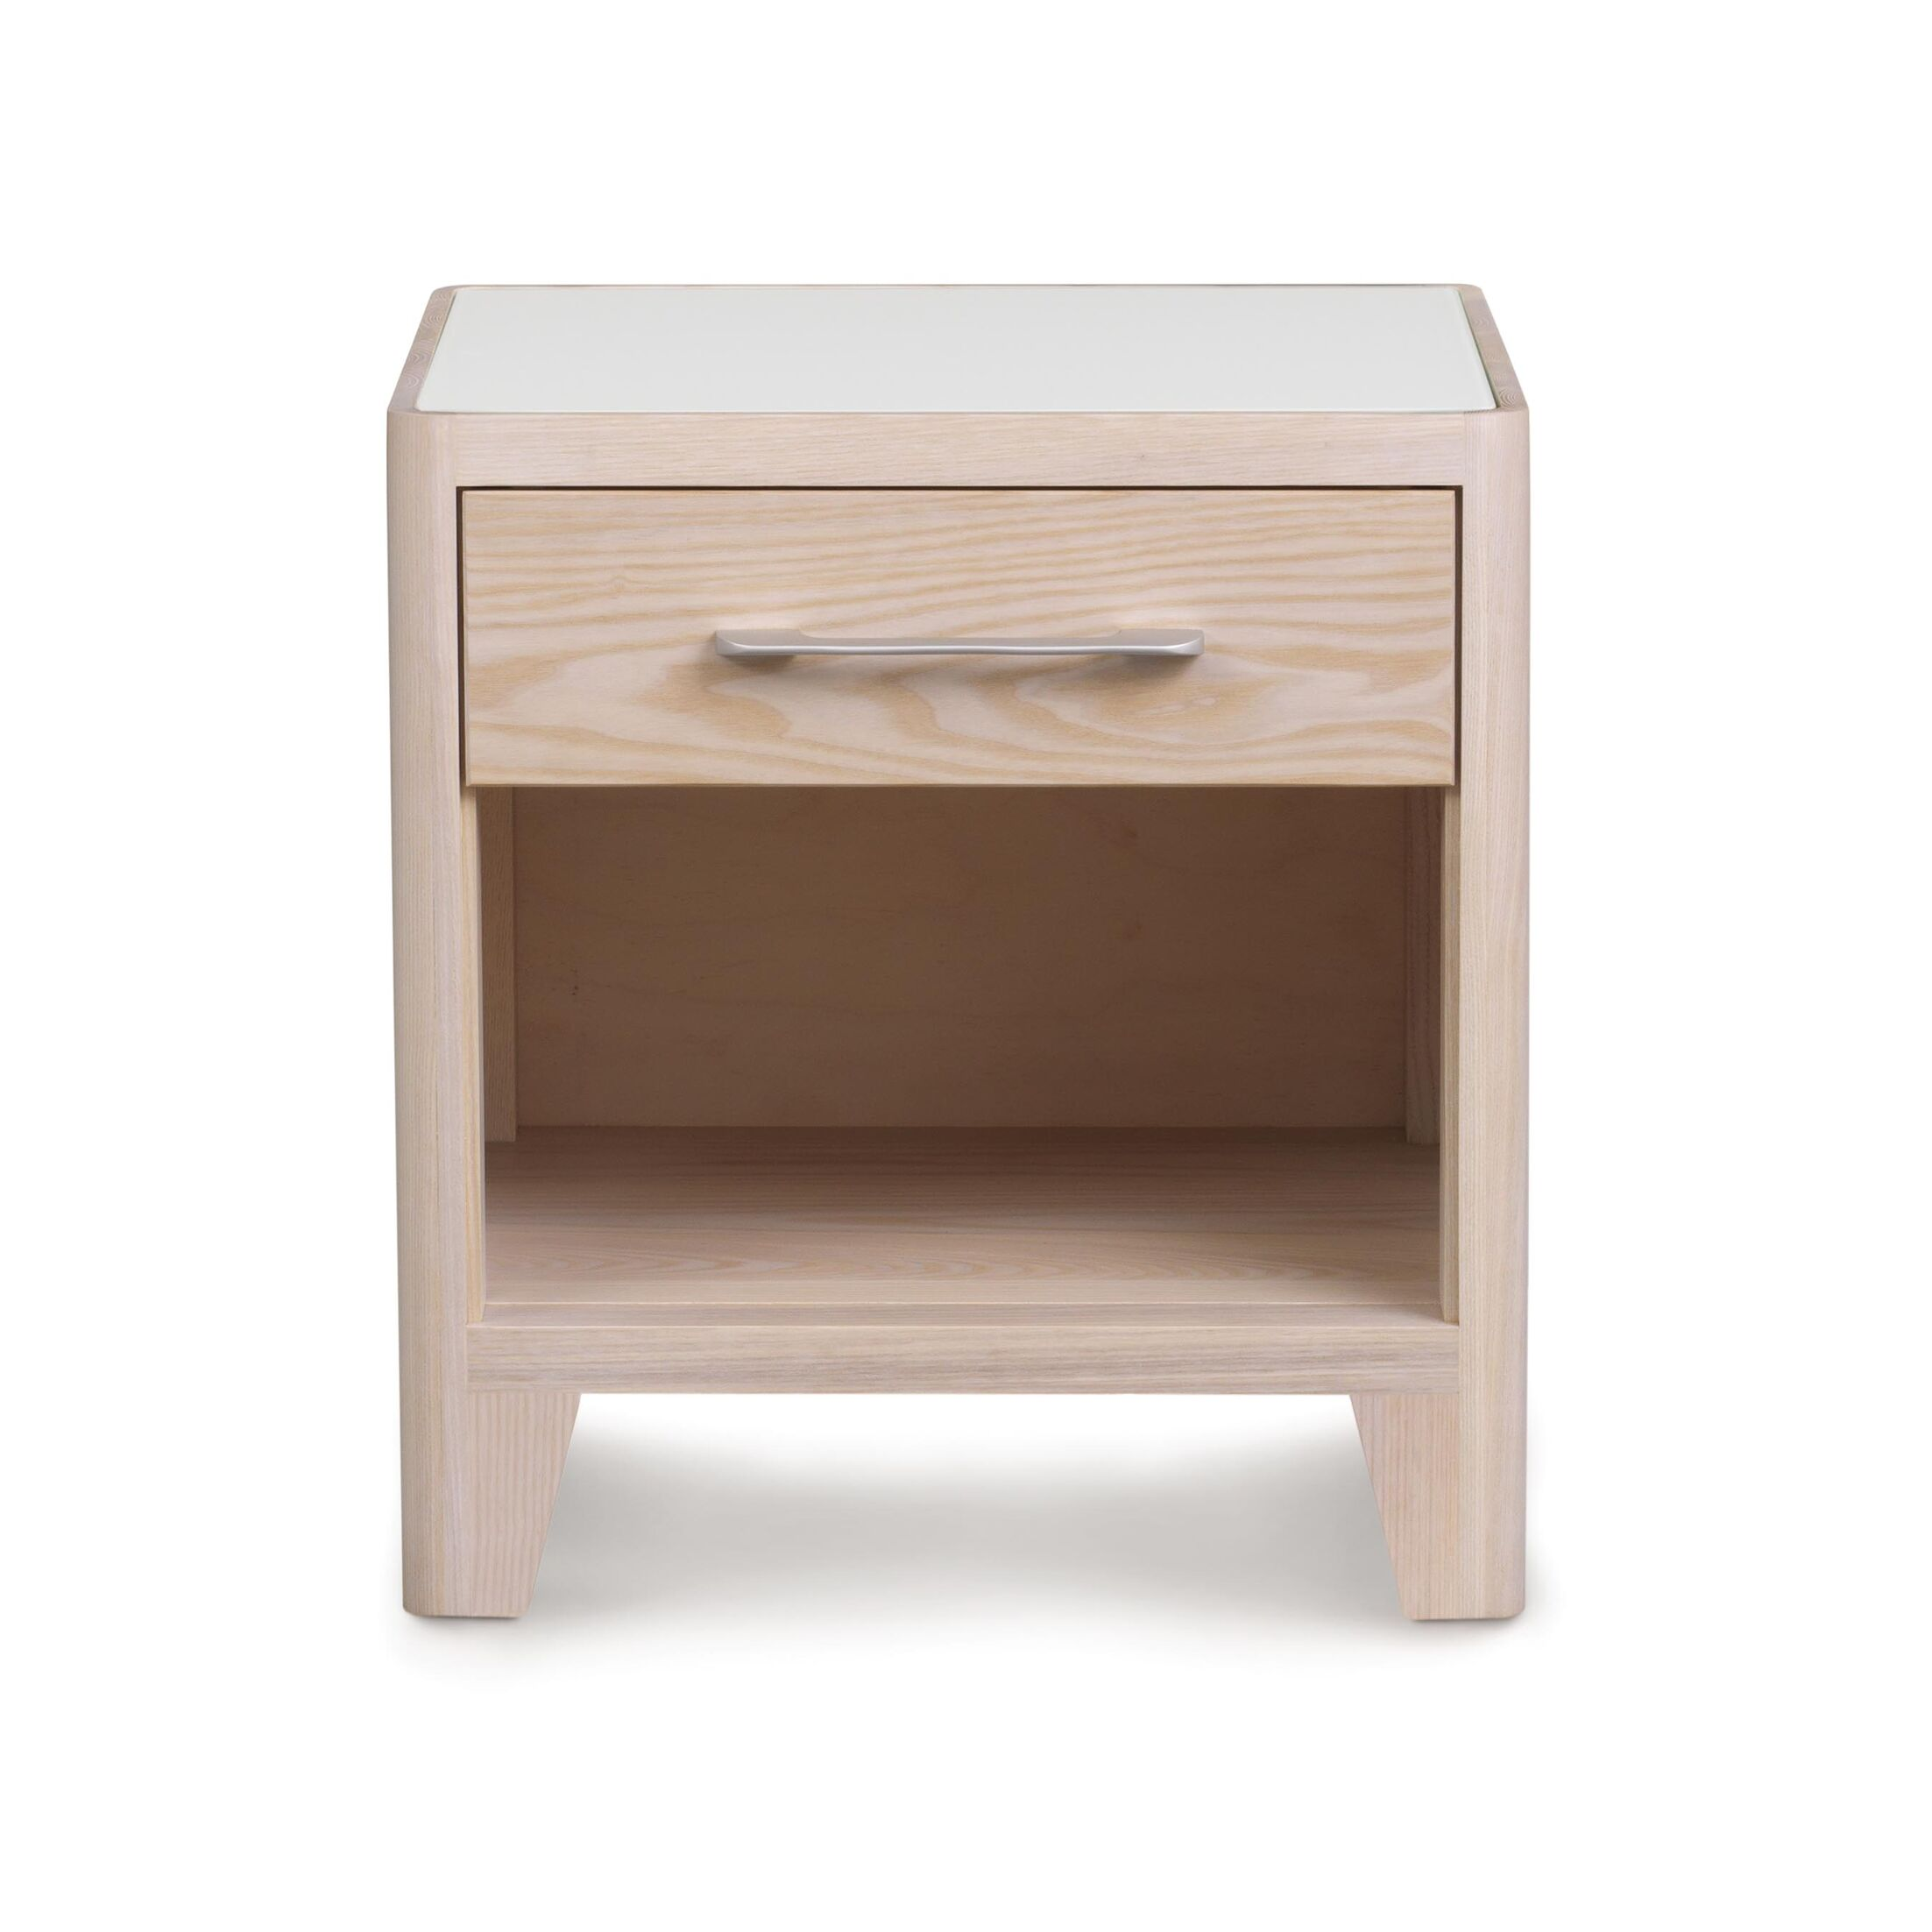 Contour 1 Drawer Nightstand Color: Soaped Ash, Base Material: Solid Ashwood, Top Material: Wood